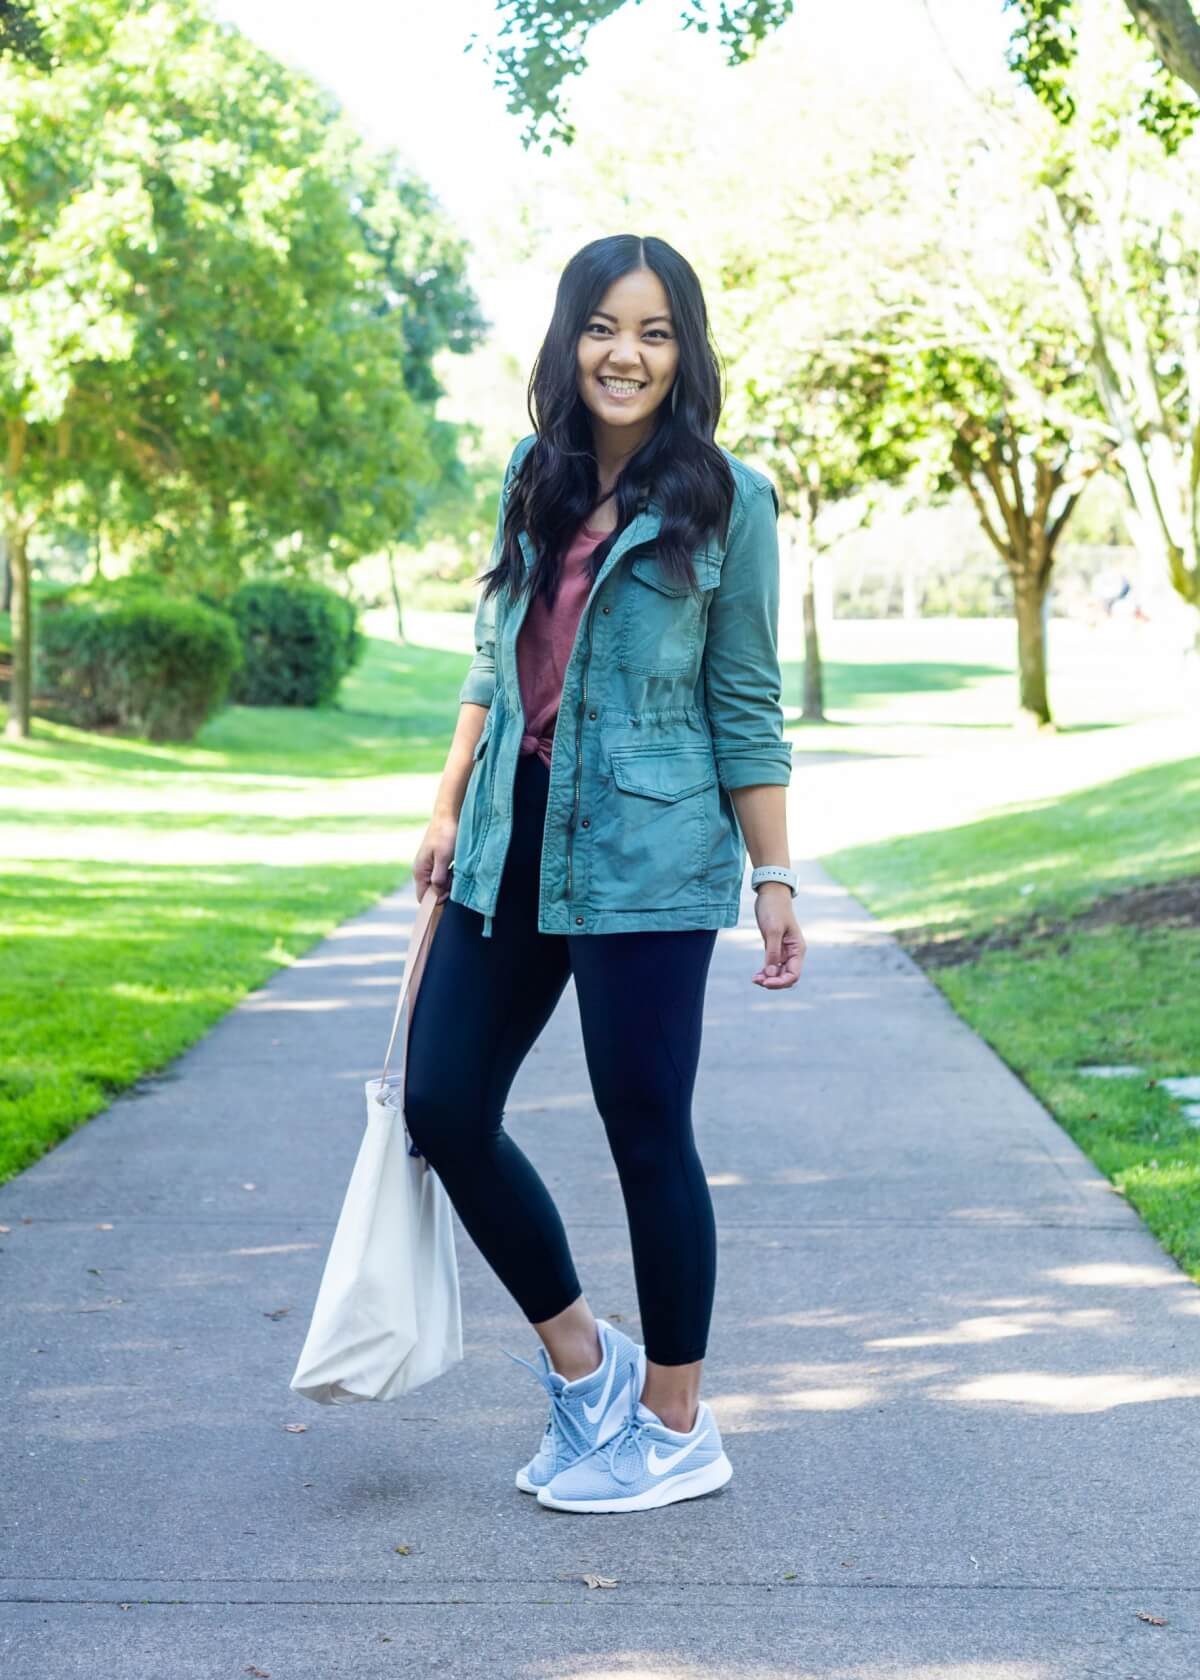 Casual Fall Outfit: dusty pink tee + black leggings + green utility jacket + gray sneakers + white canvas tote side